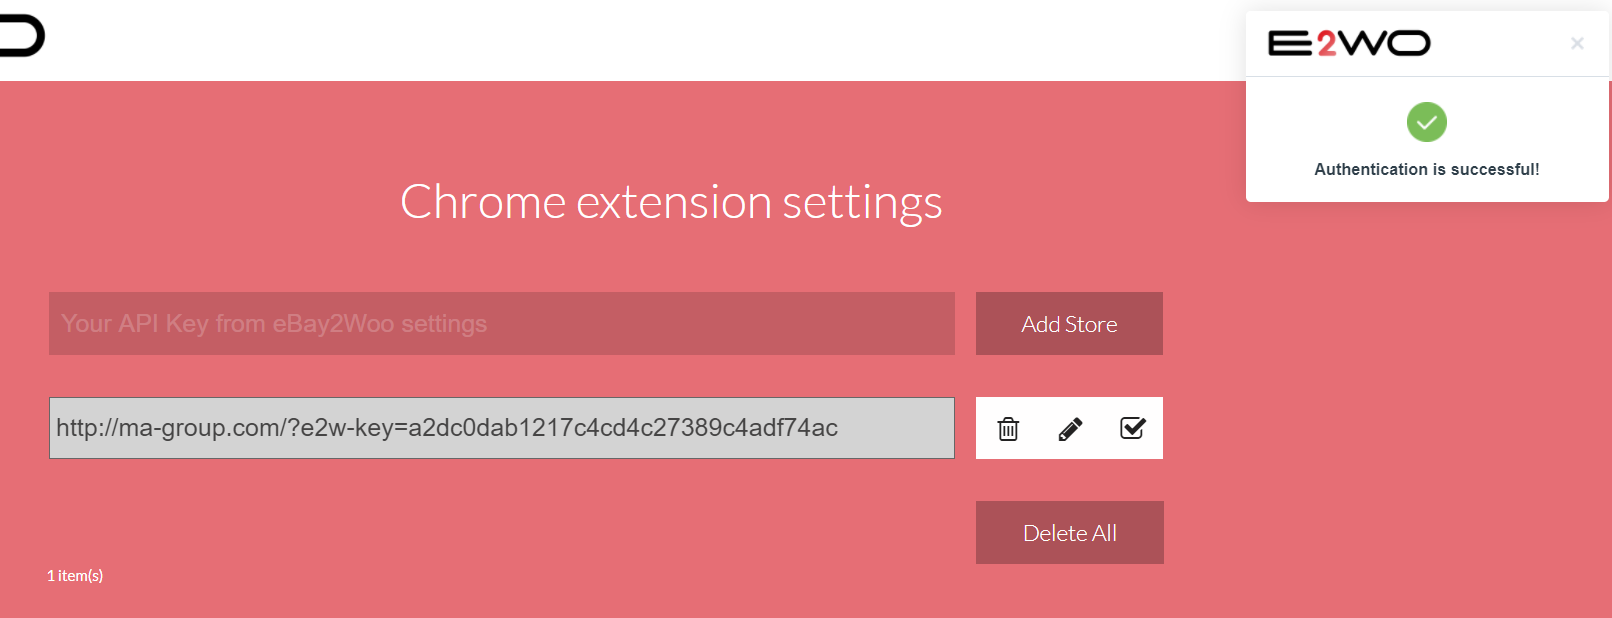 ebay-chrome-extension-options-auth-sucessfull